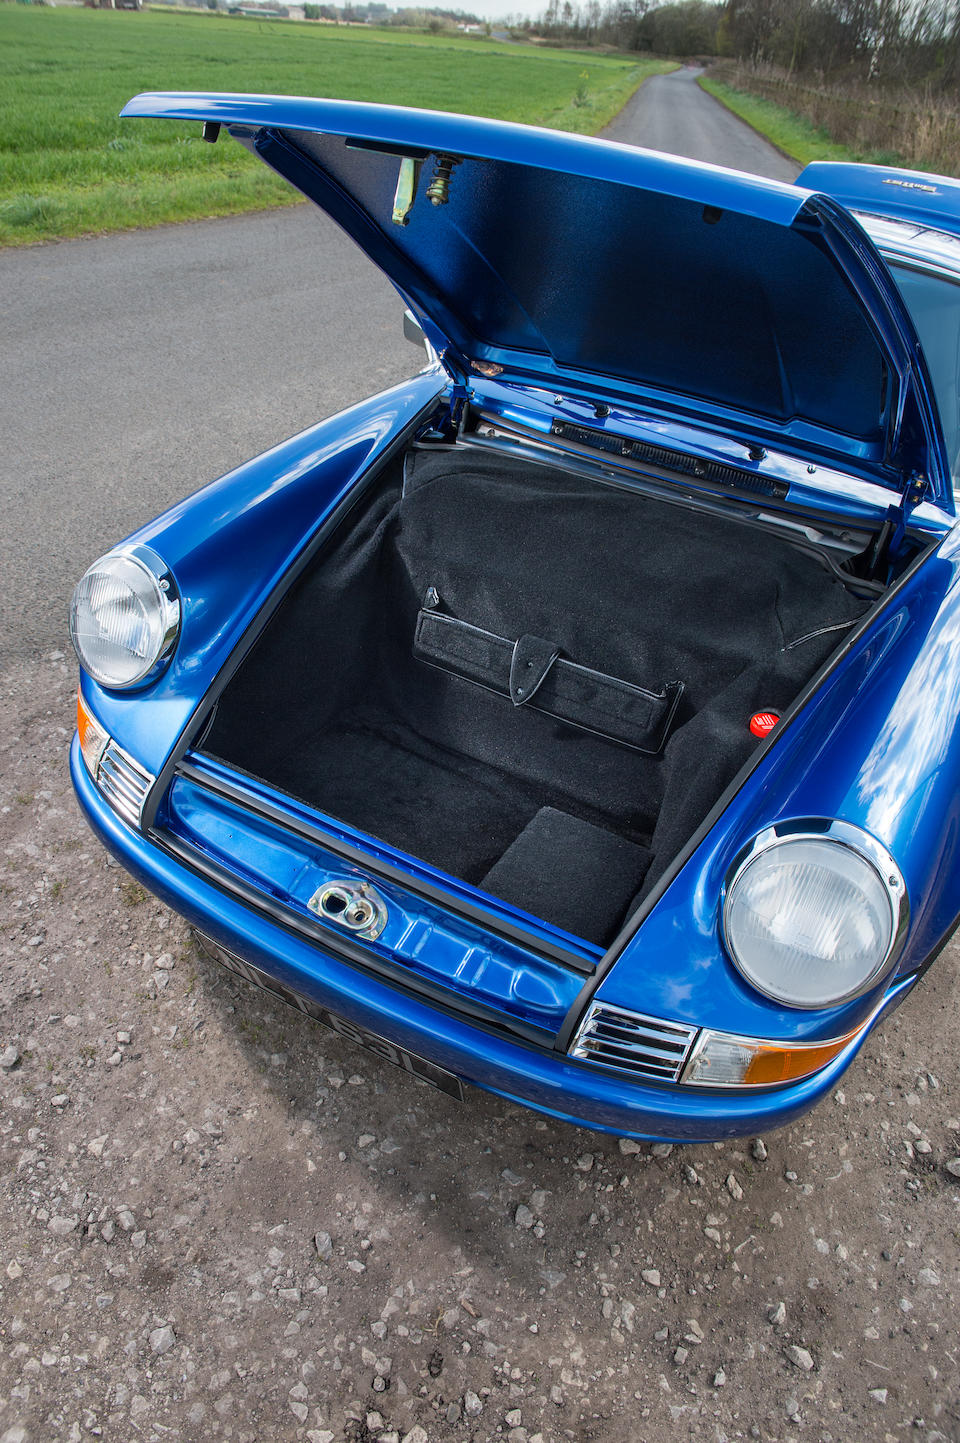 1992 Porsche 911 Type 964 Carrera 2 9m11ST Conversion by Ninemeister  Chassis no. WP0ZZZ96ZNS400562